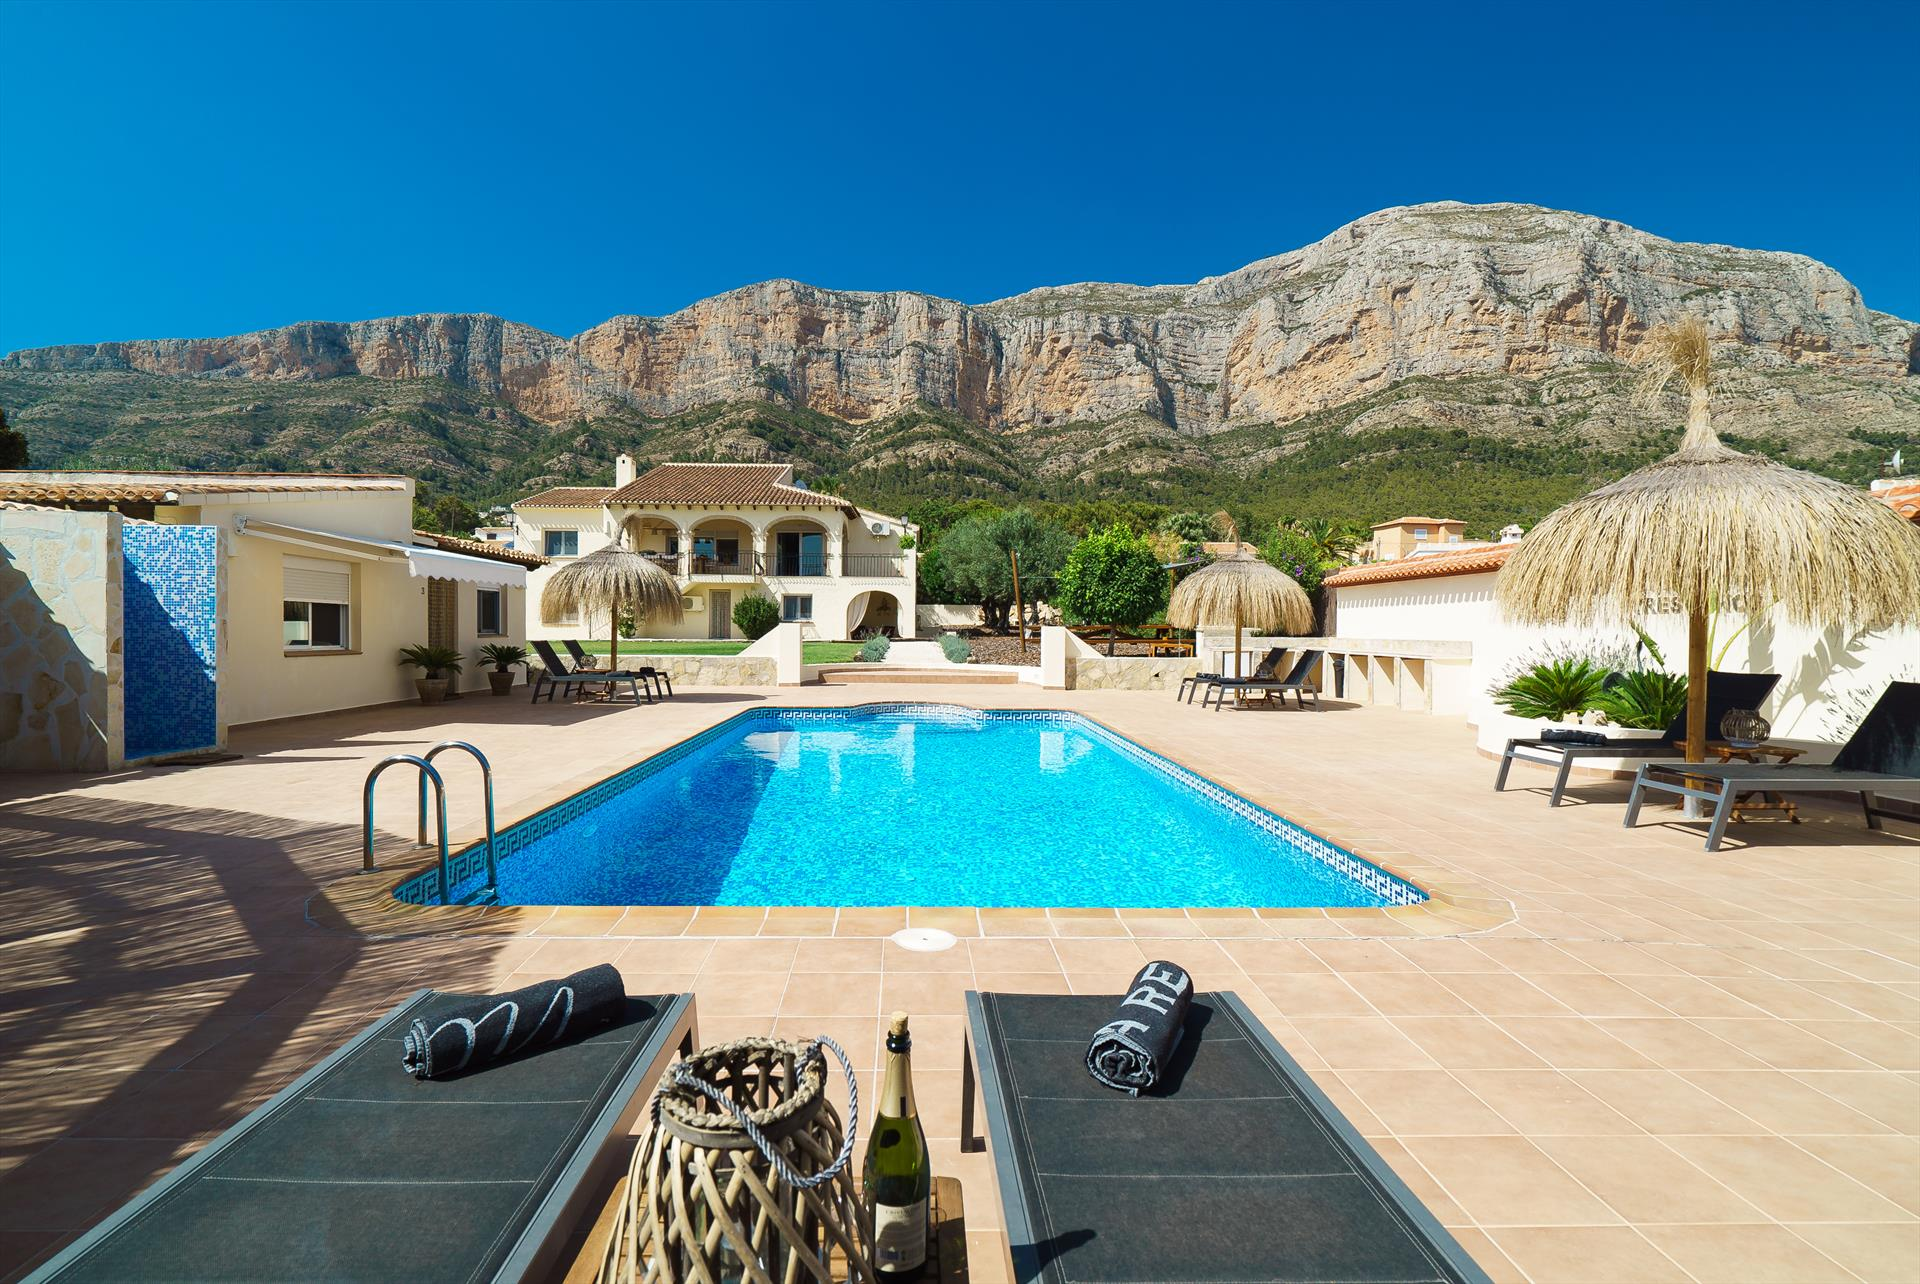 Tres Ninos 8 pax, Wonderful and comfortable villa in Javea, on the Costa Blanca, Spain  with private pool for 8 persons.....